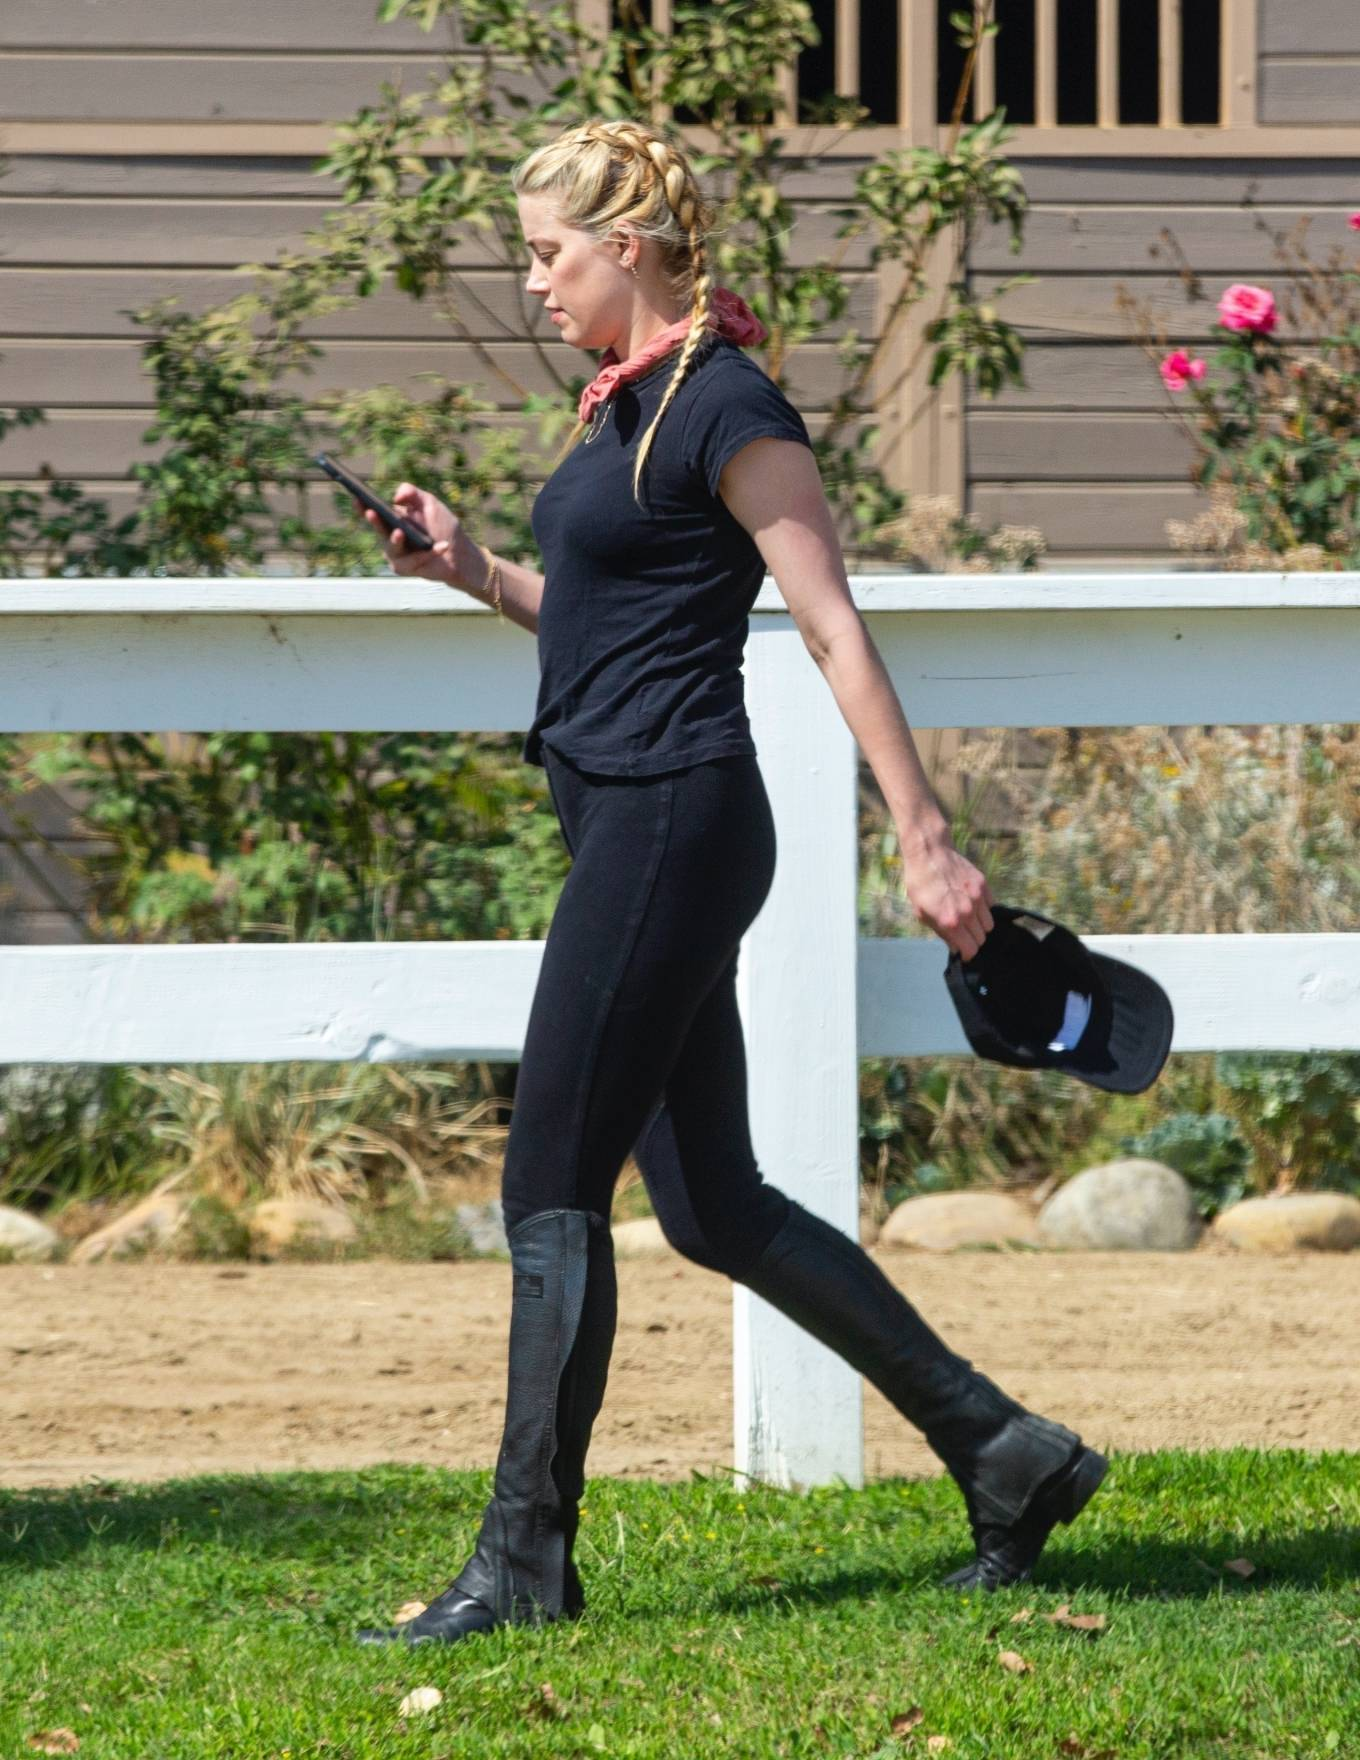 Amber Heard - Pictured horseback riding in Los Angeles